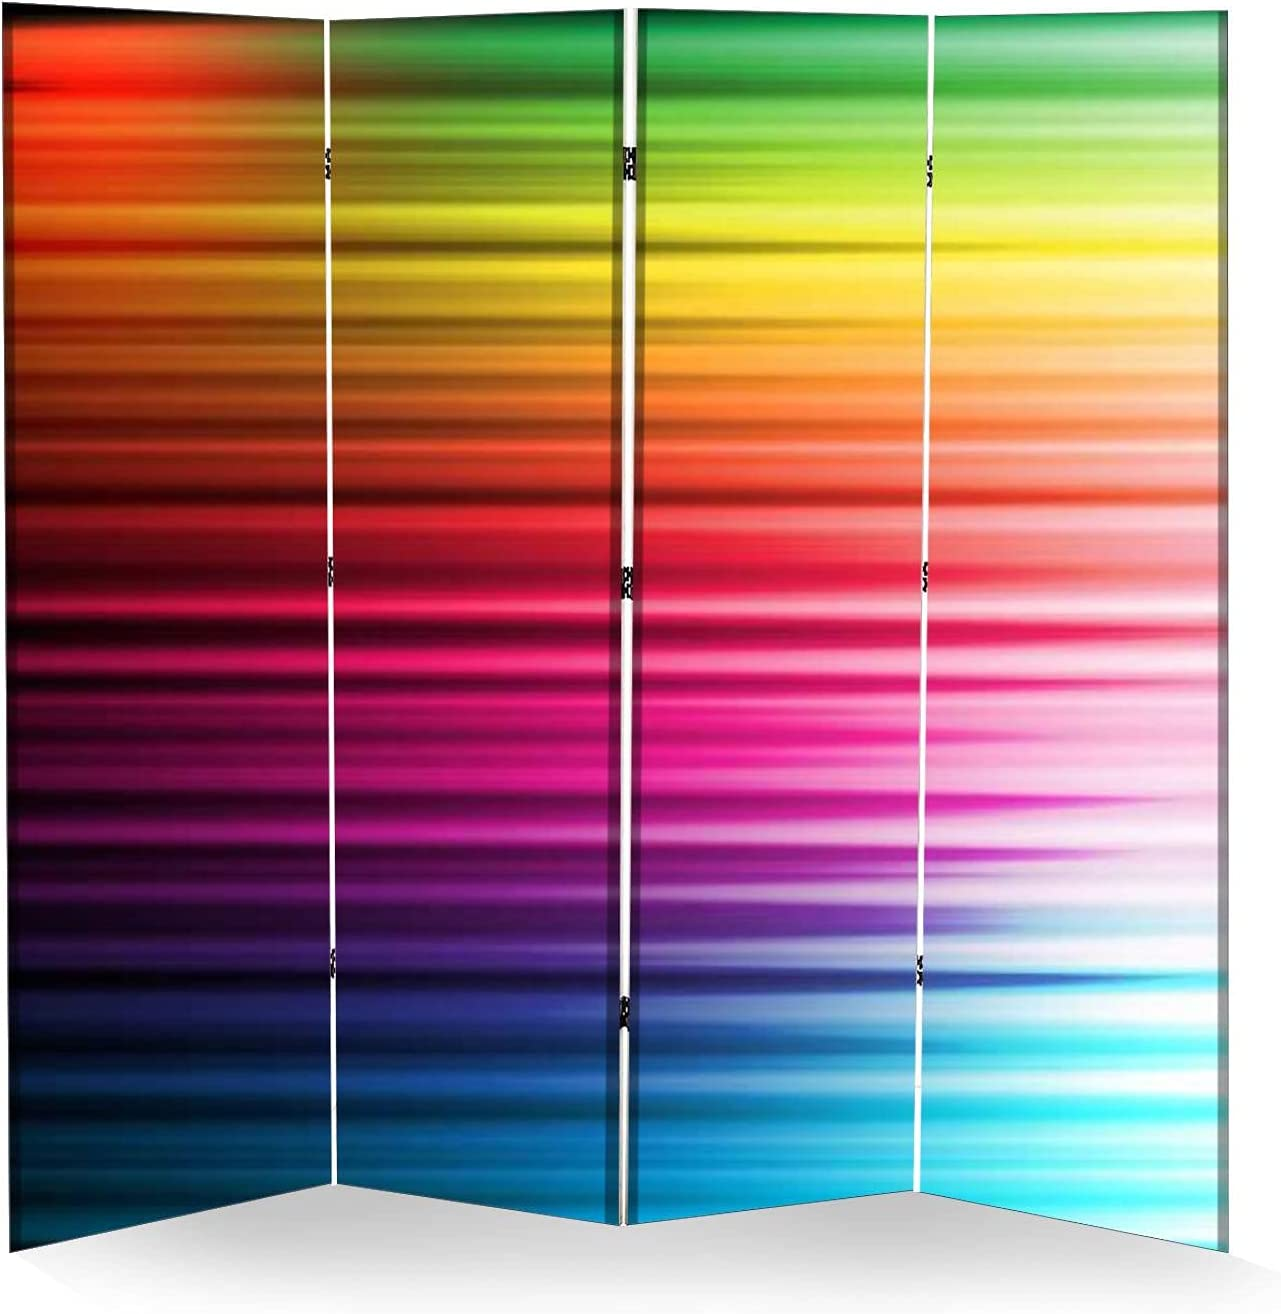 4 Panel Max 89% OFF Wall Divider Colorful Privacy Courier shipping free shipping Background Canvas Folding